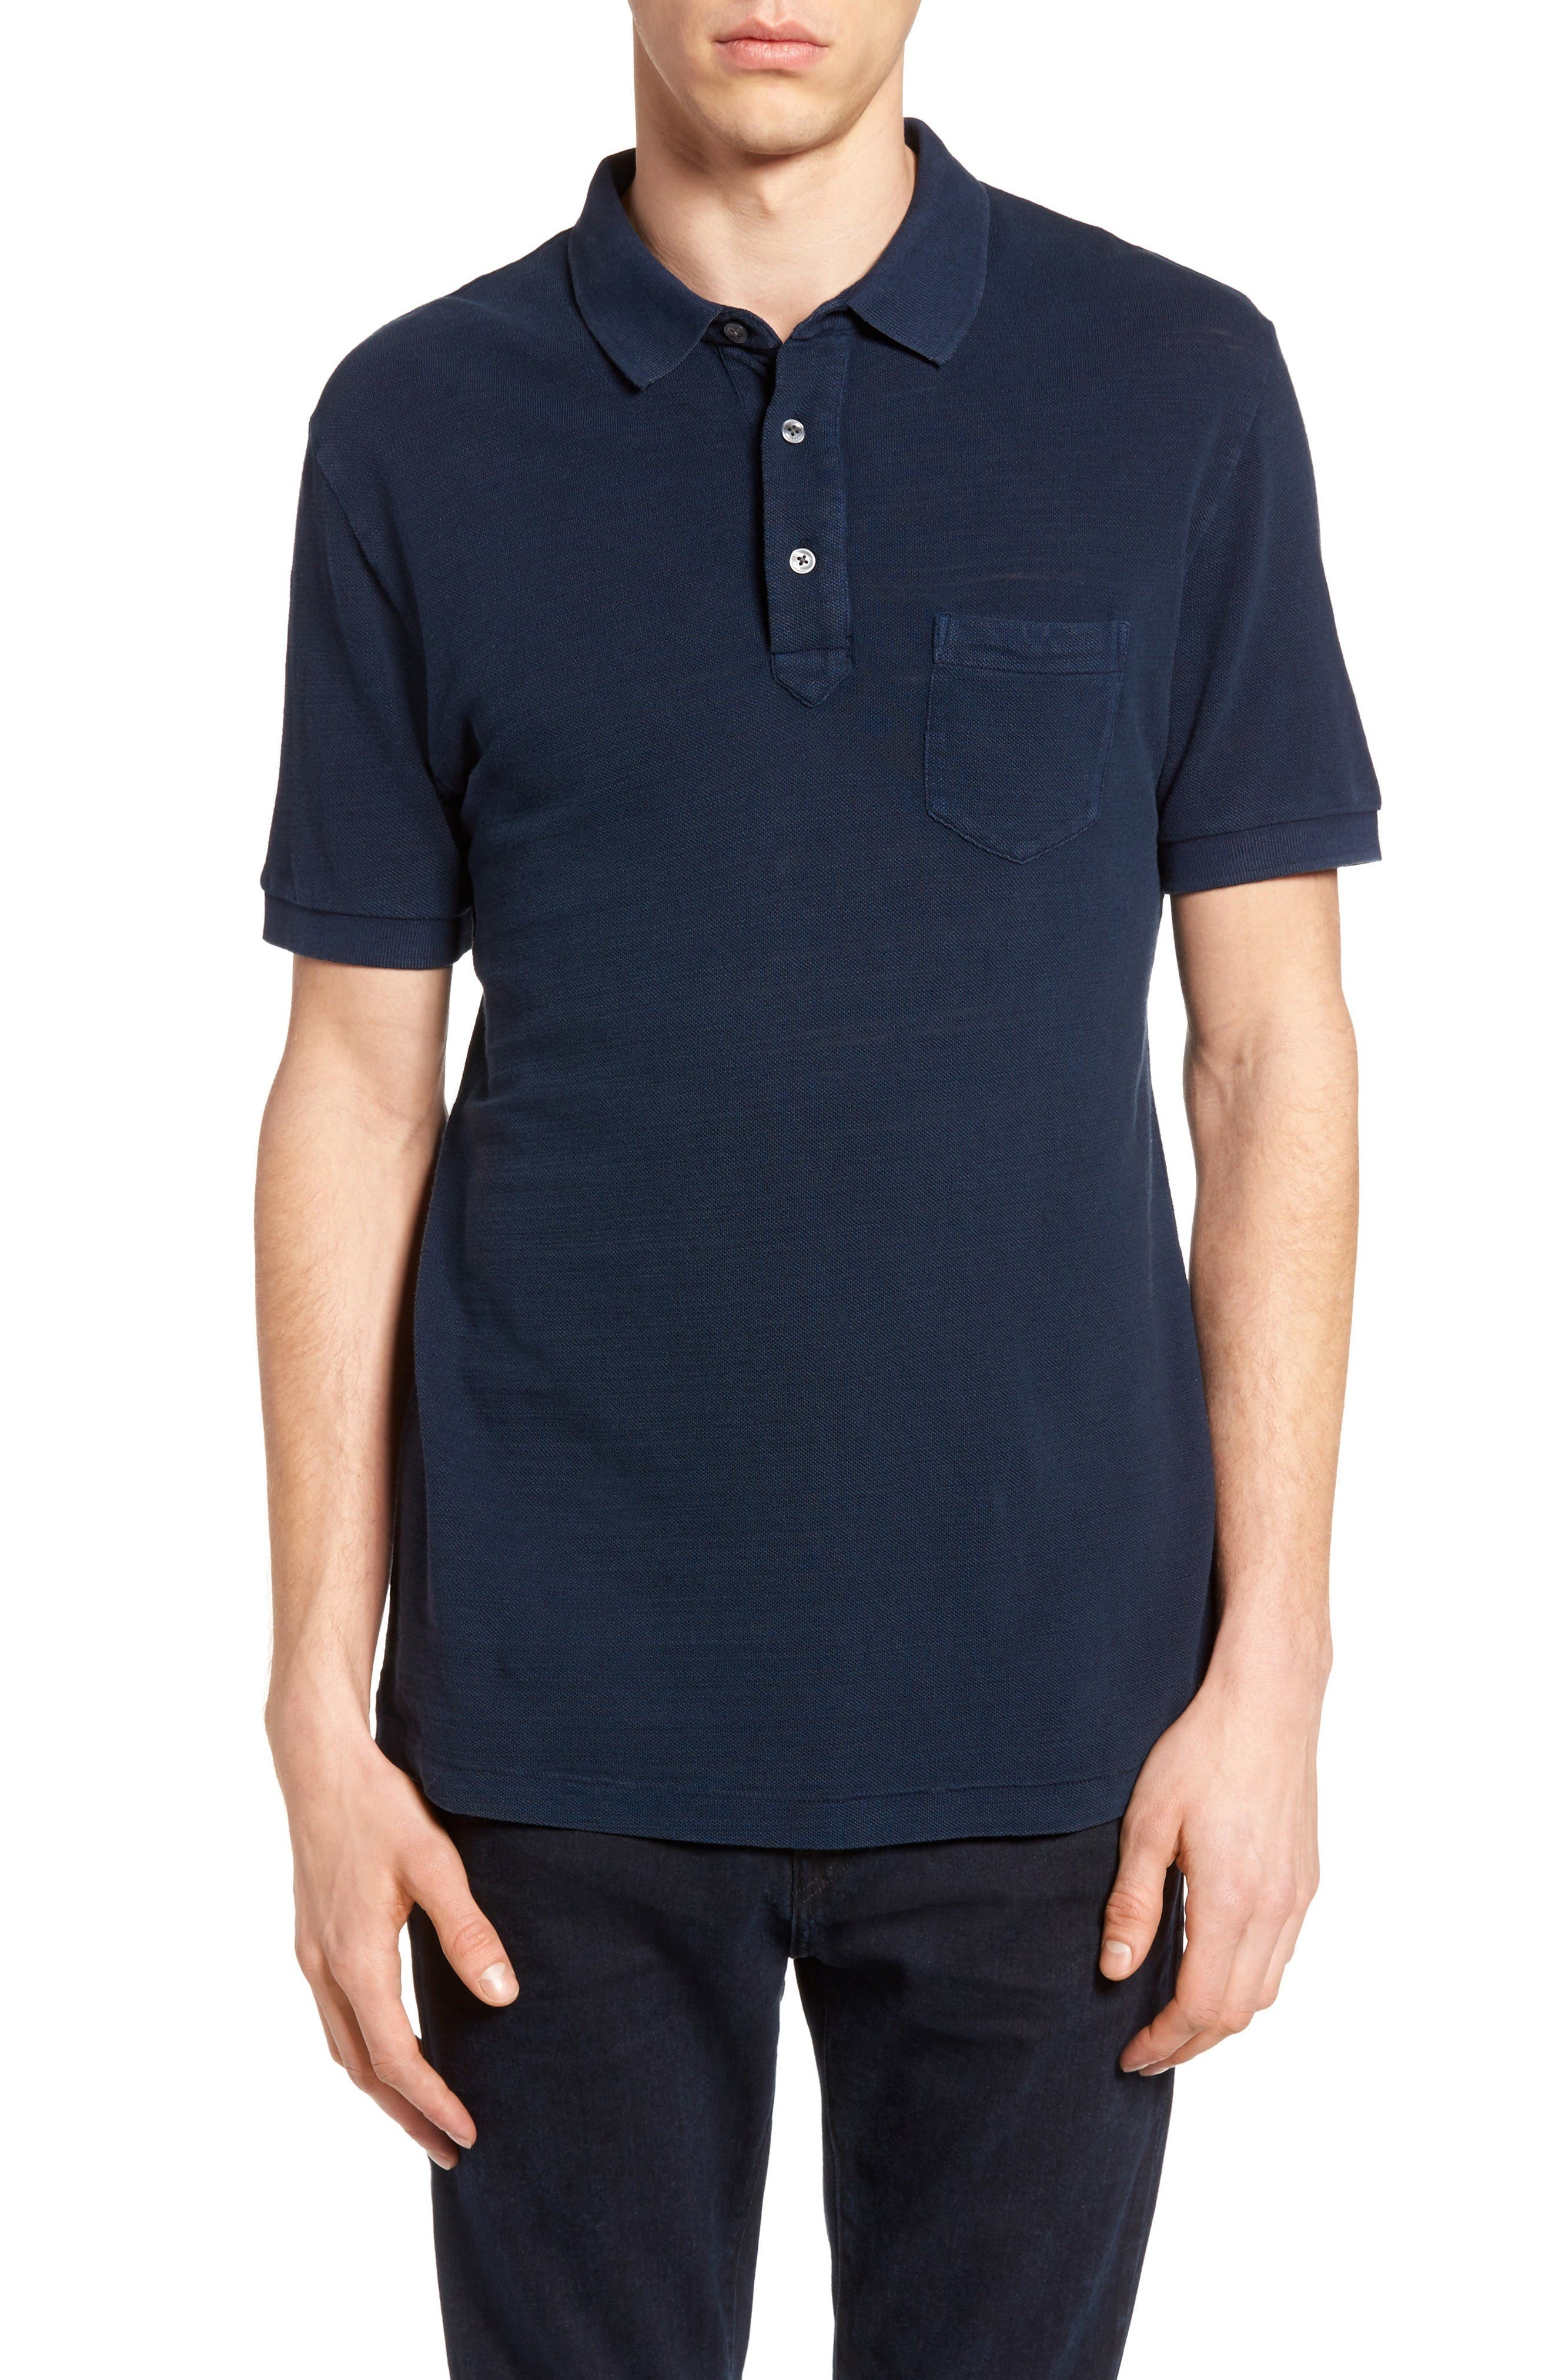 Alternate Image 1 Selected - French Connection Slub Knit Polo